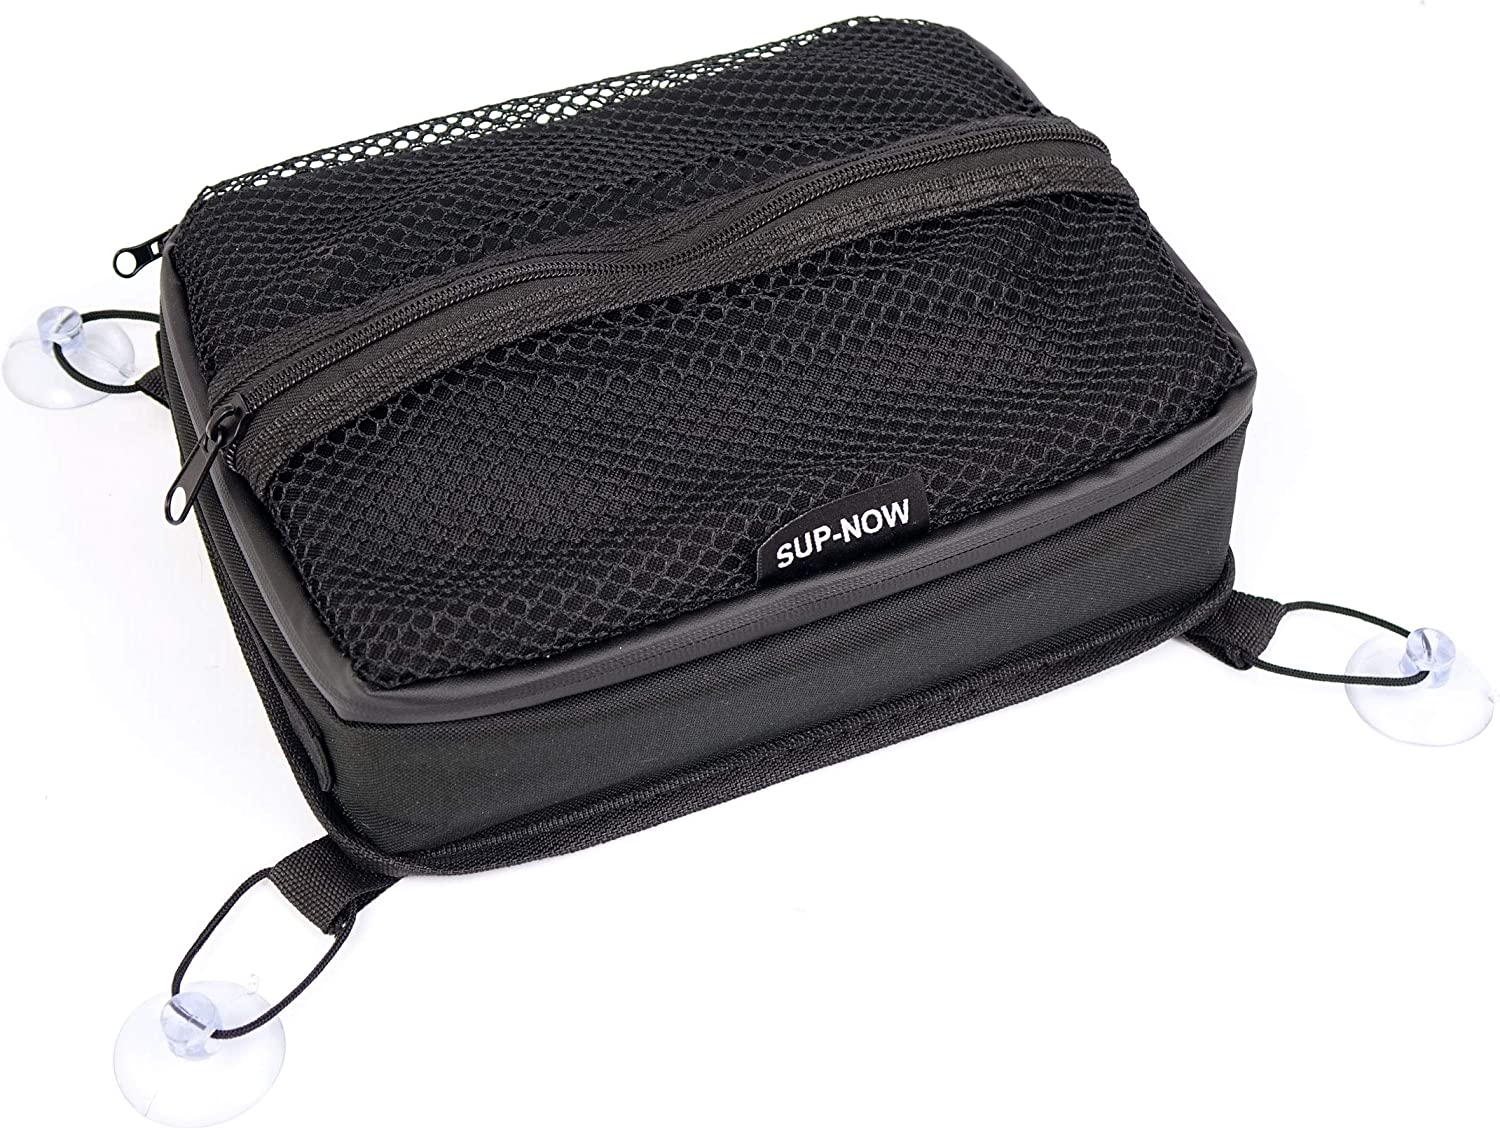 SUP-Now Paddleboard Accessories Cooler & Mesh Bag in One